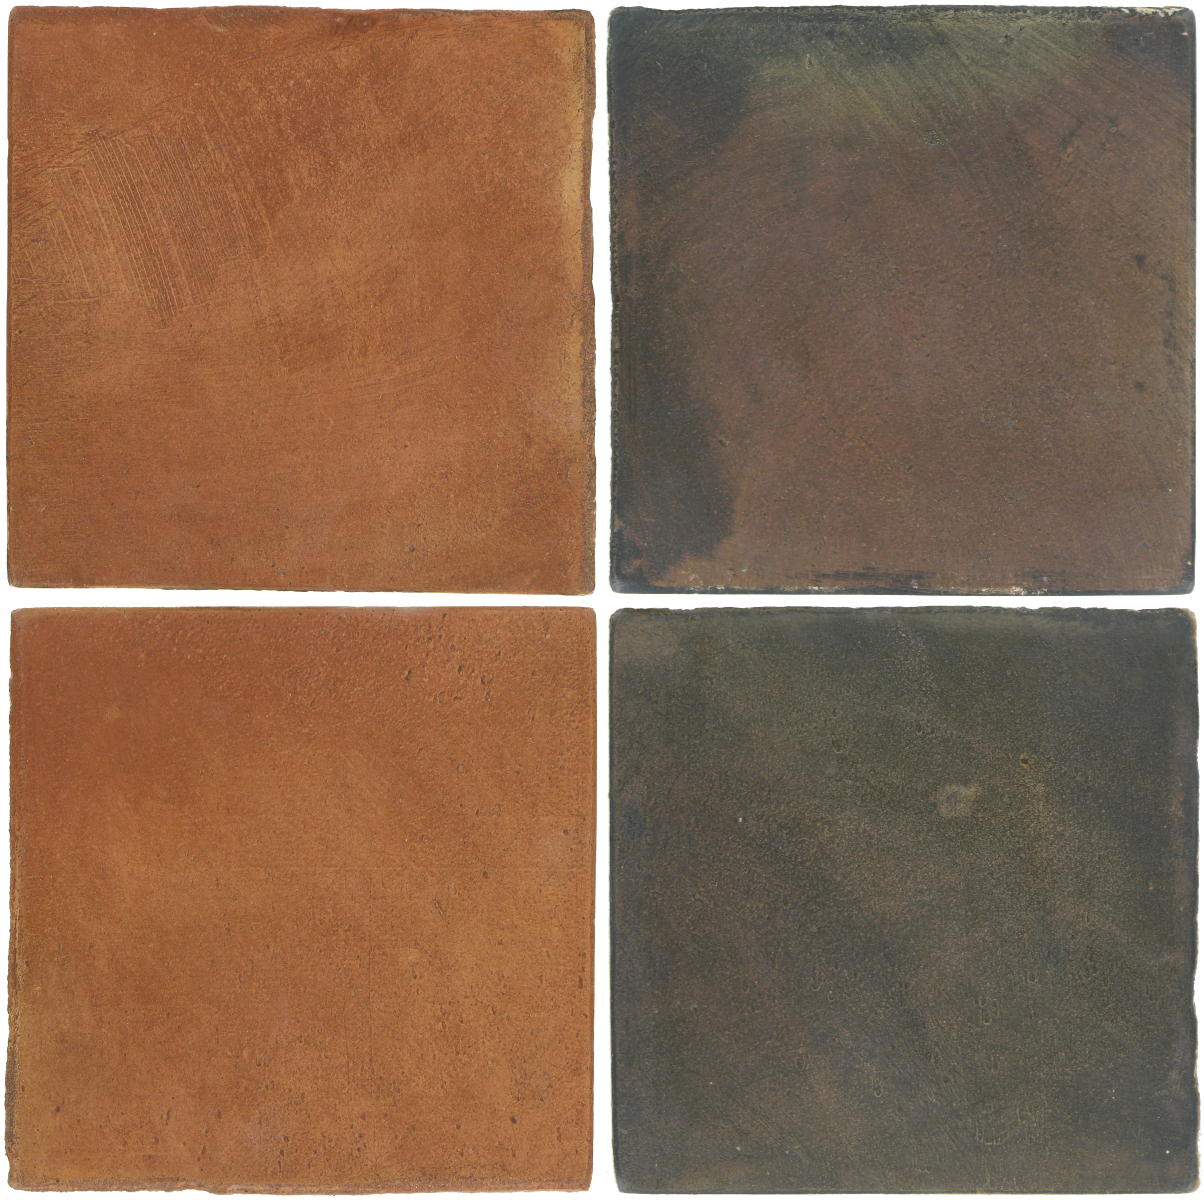 Pedralbes Antique Terracotta  2 Color Combinations  OHS-PSTR Traditional + OHS-PSTG Terra Grey